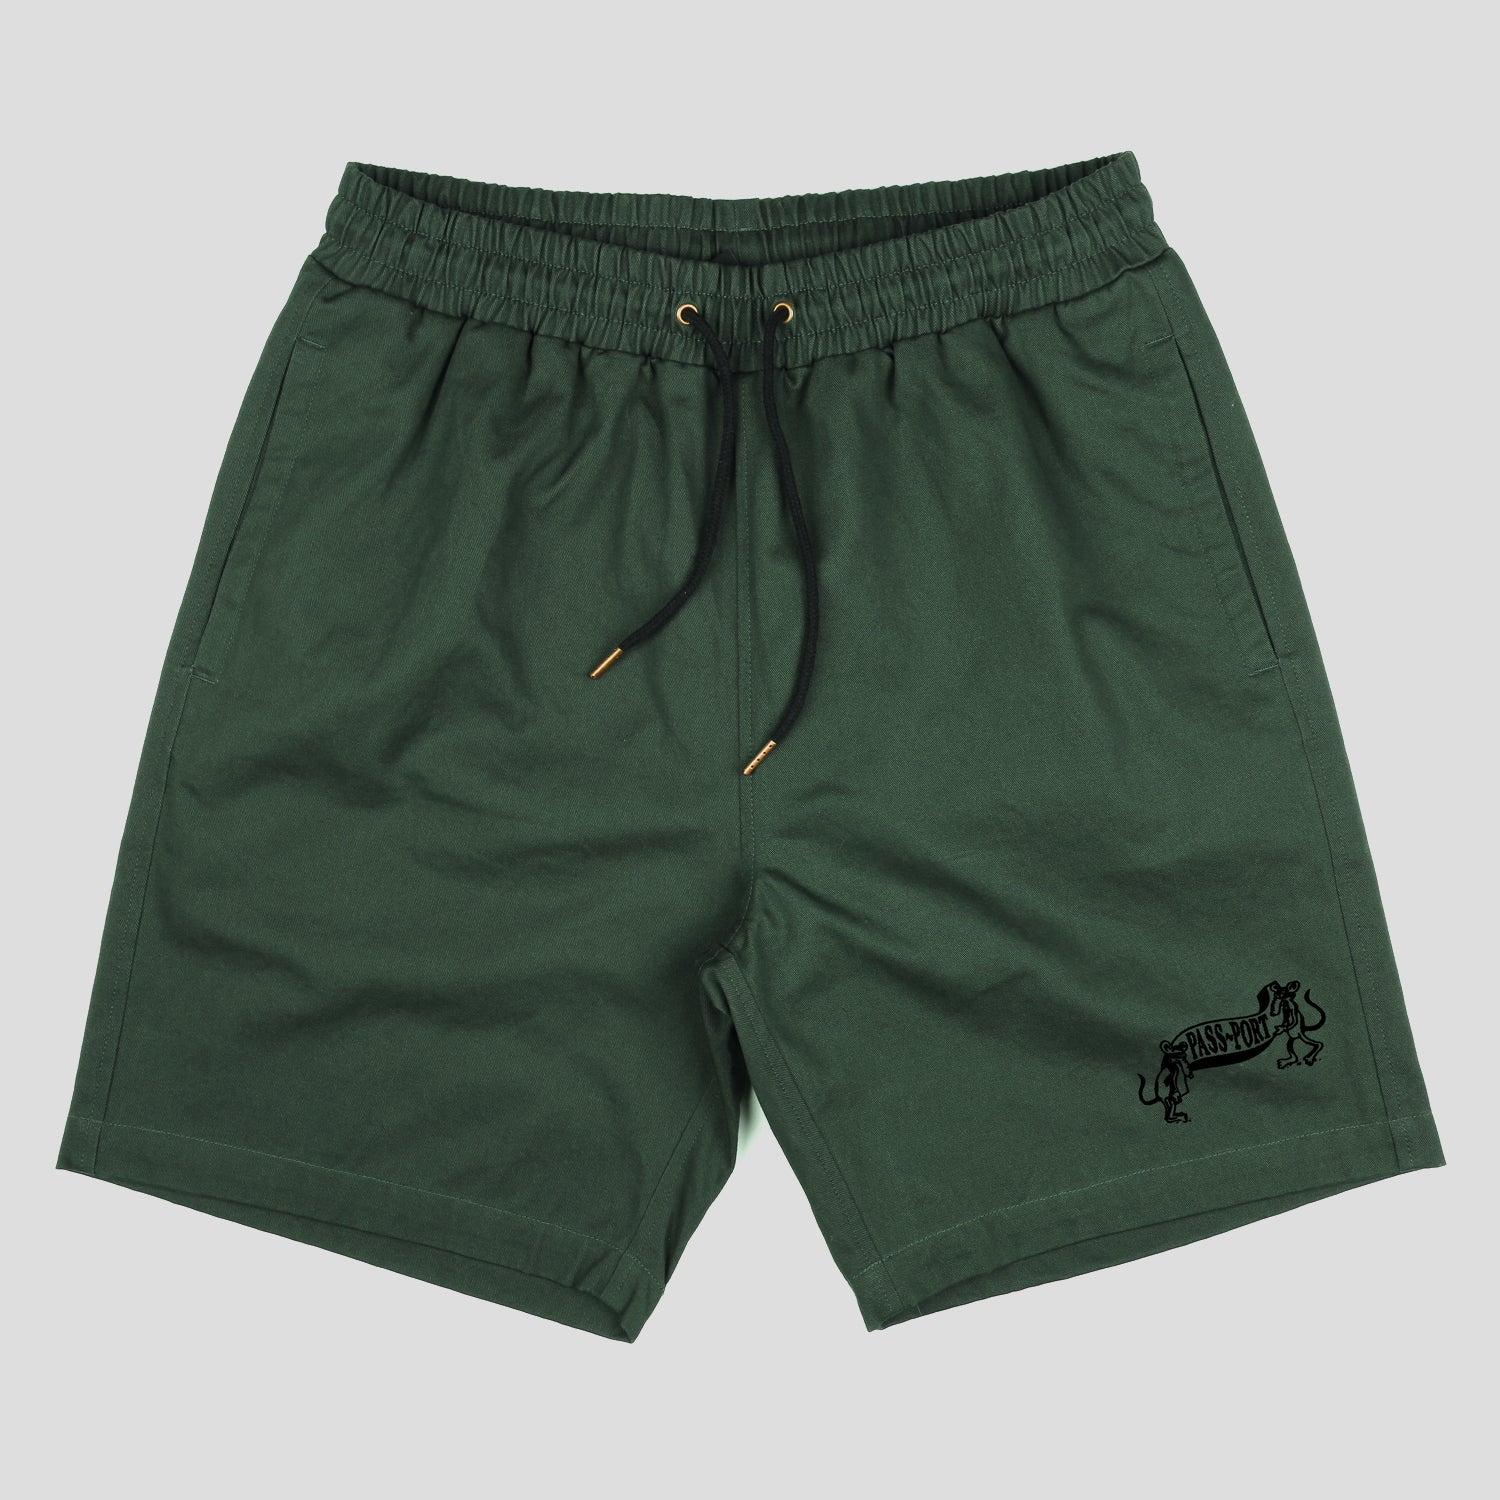 Missing Tilde Shorts (Green)